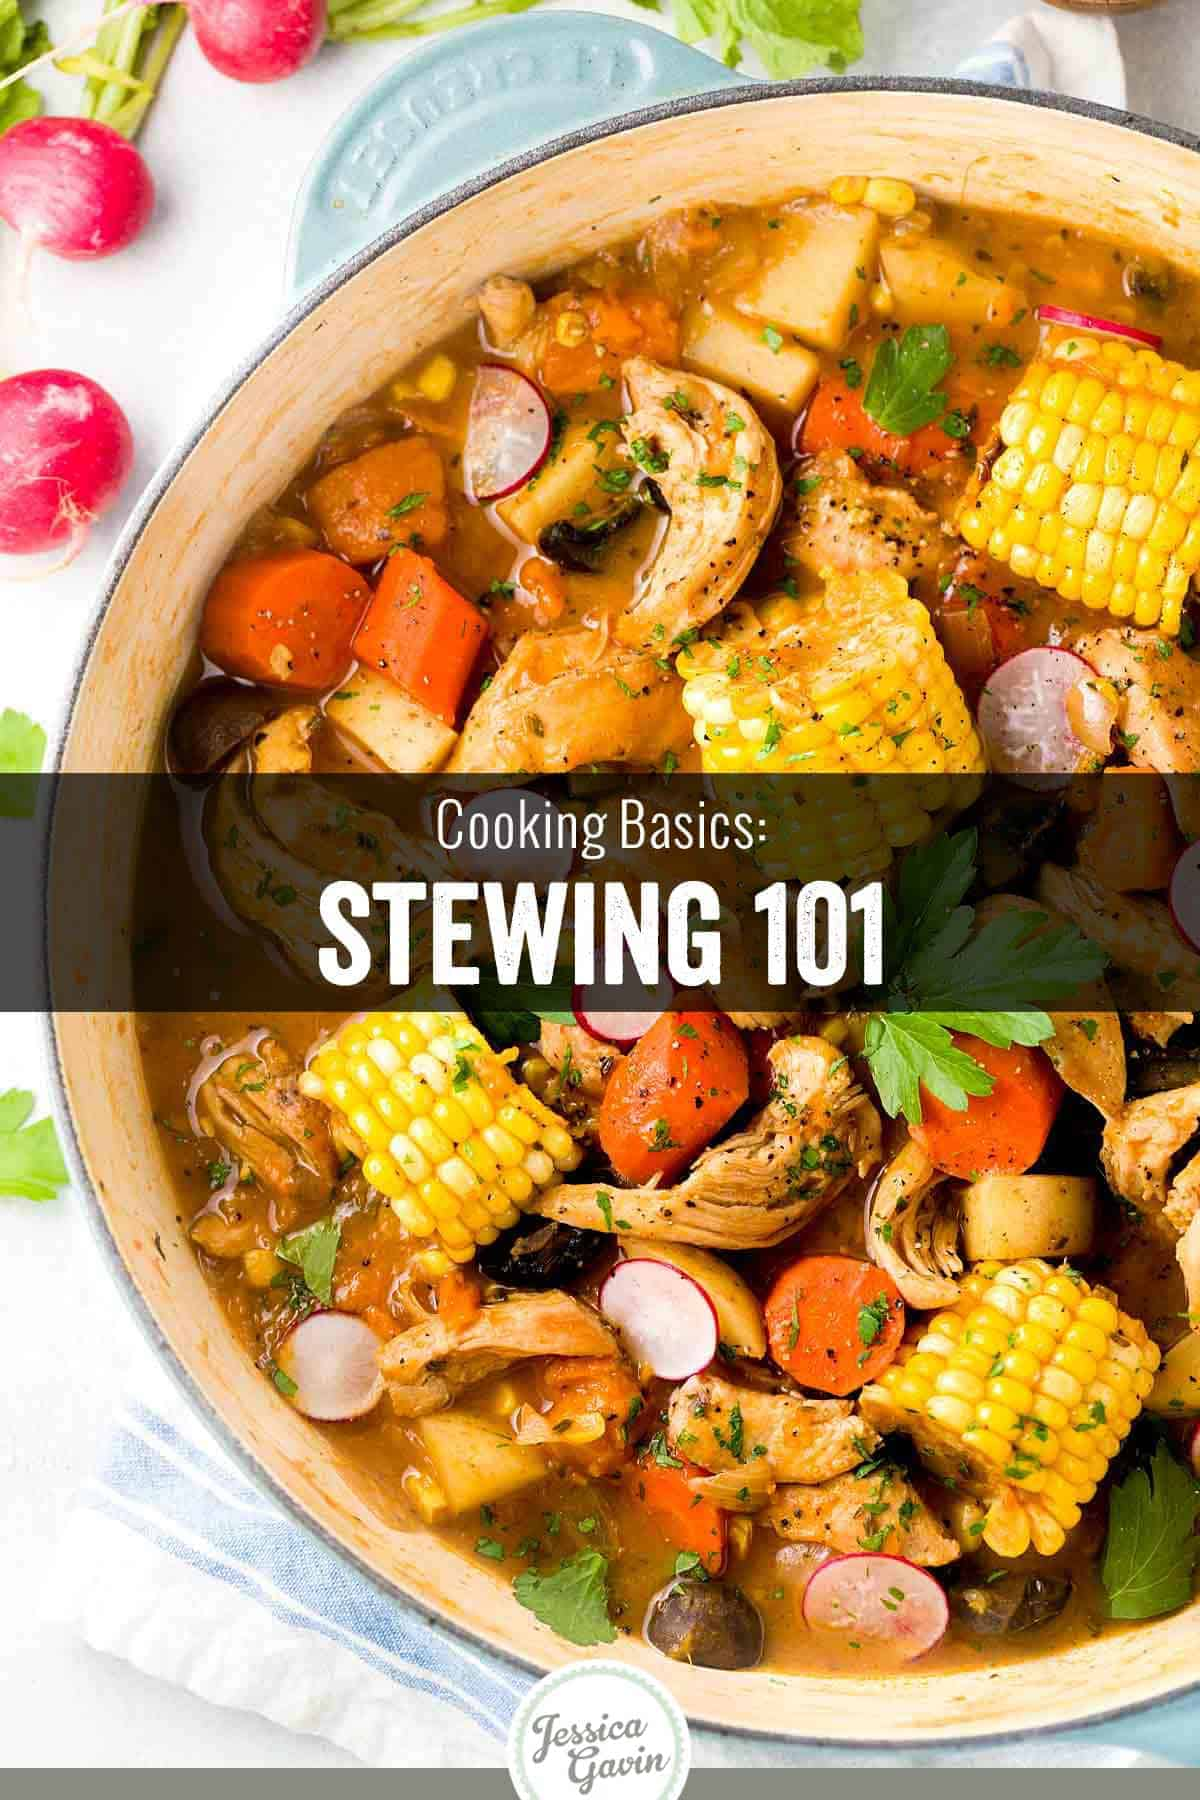 all about the stewing cooking method